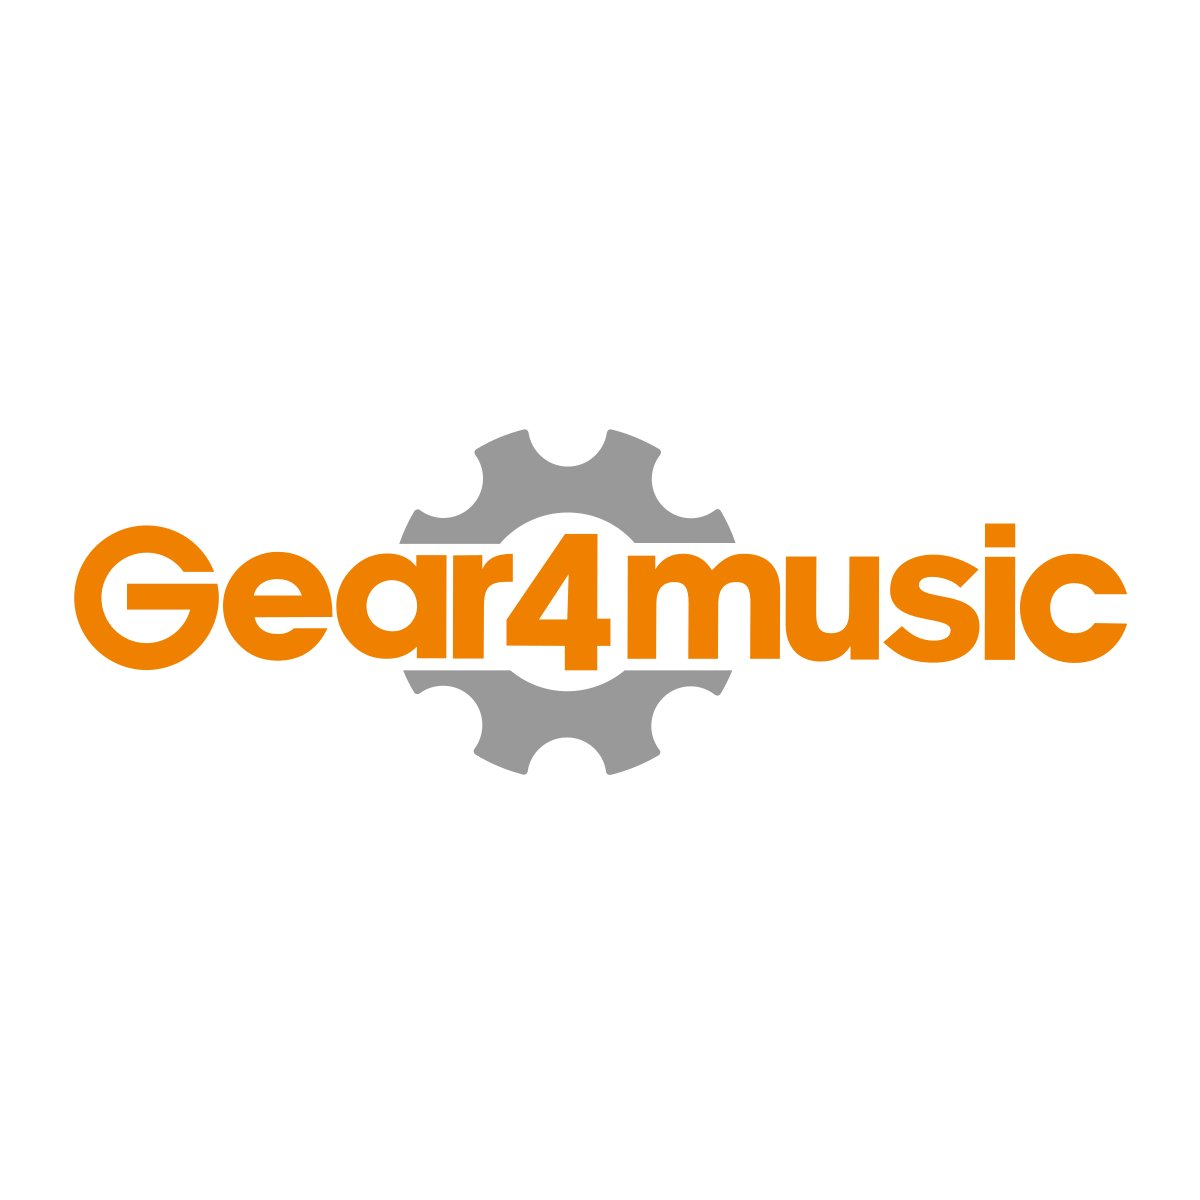 Coppergate Alto pozoun, Gear4music